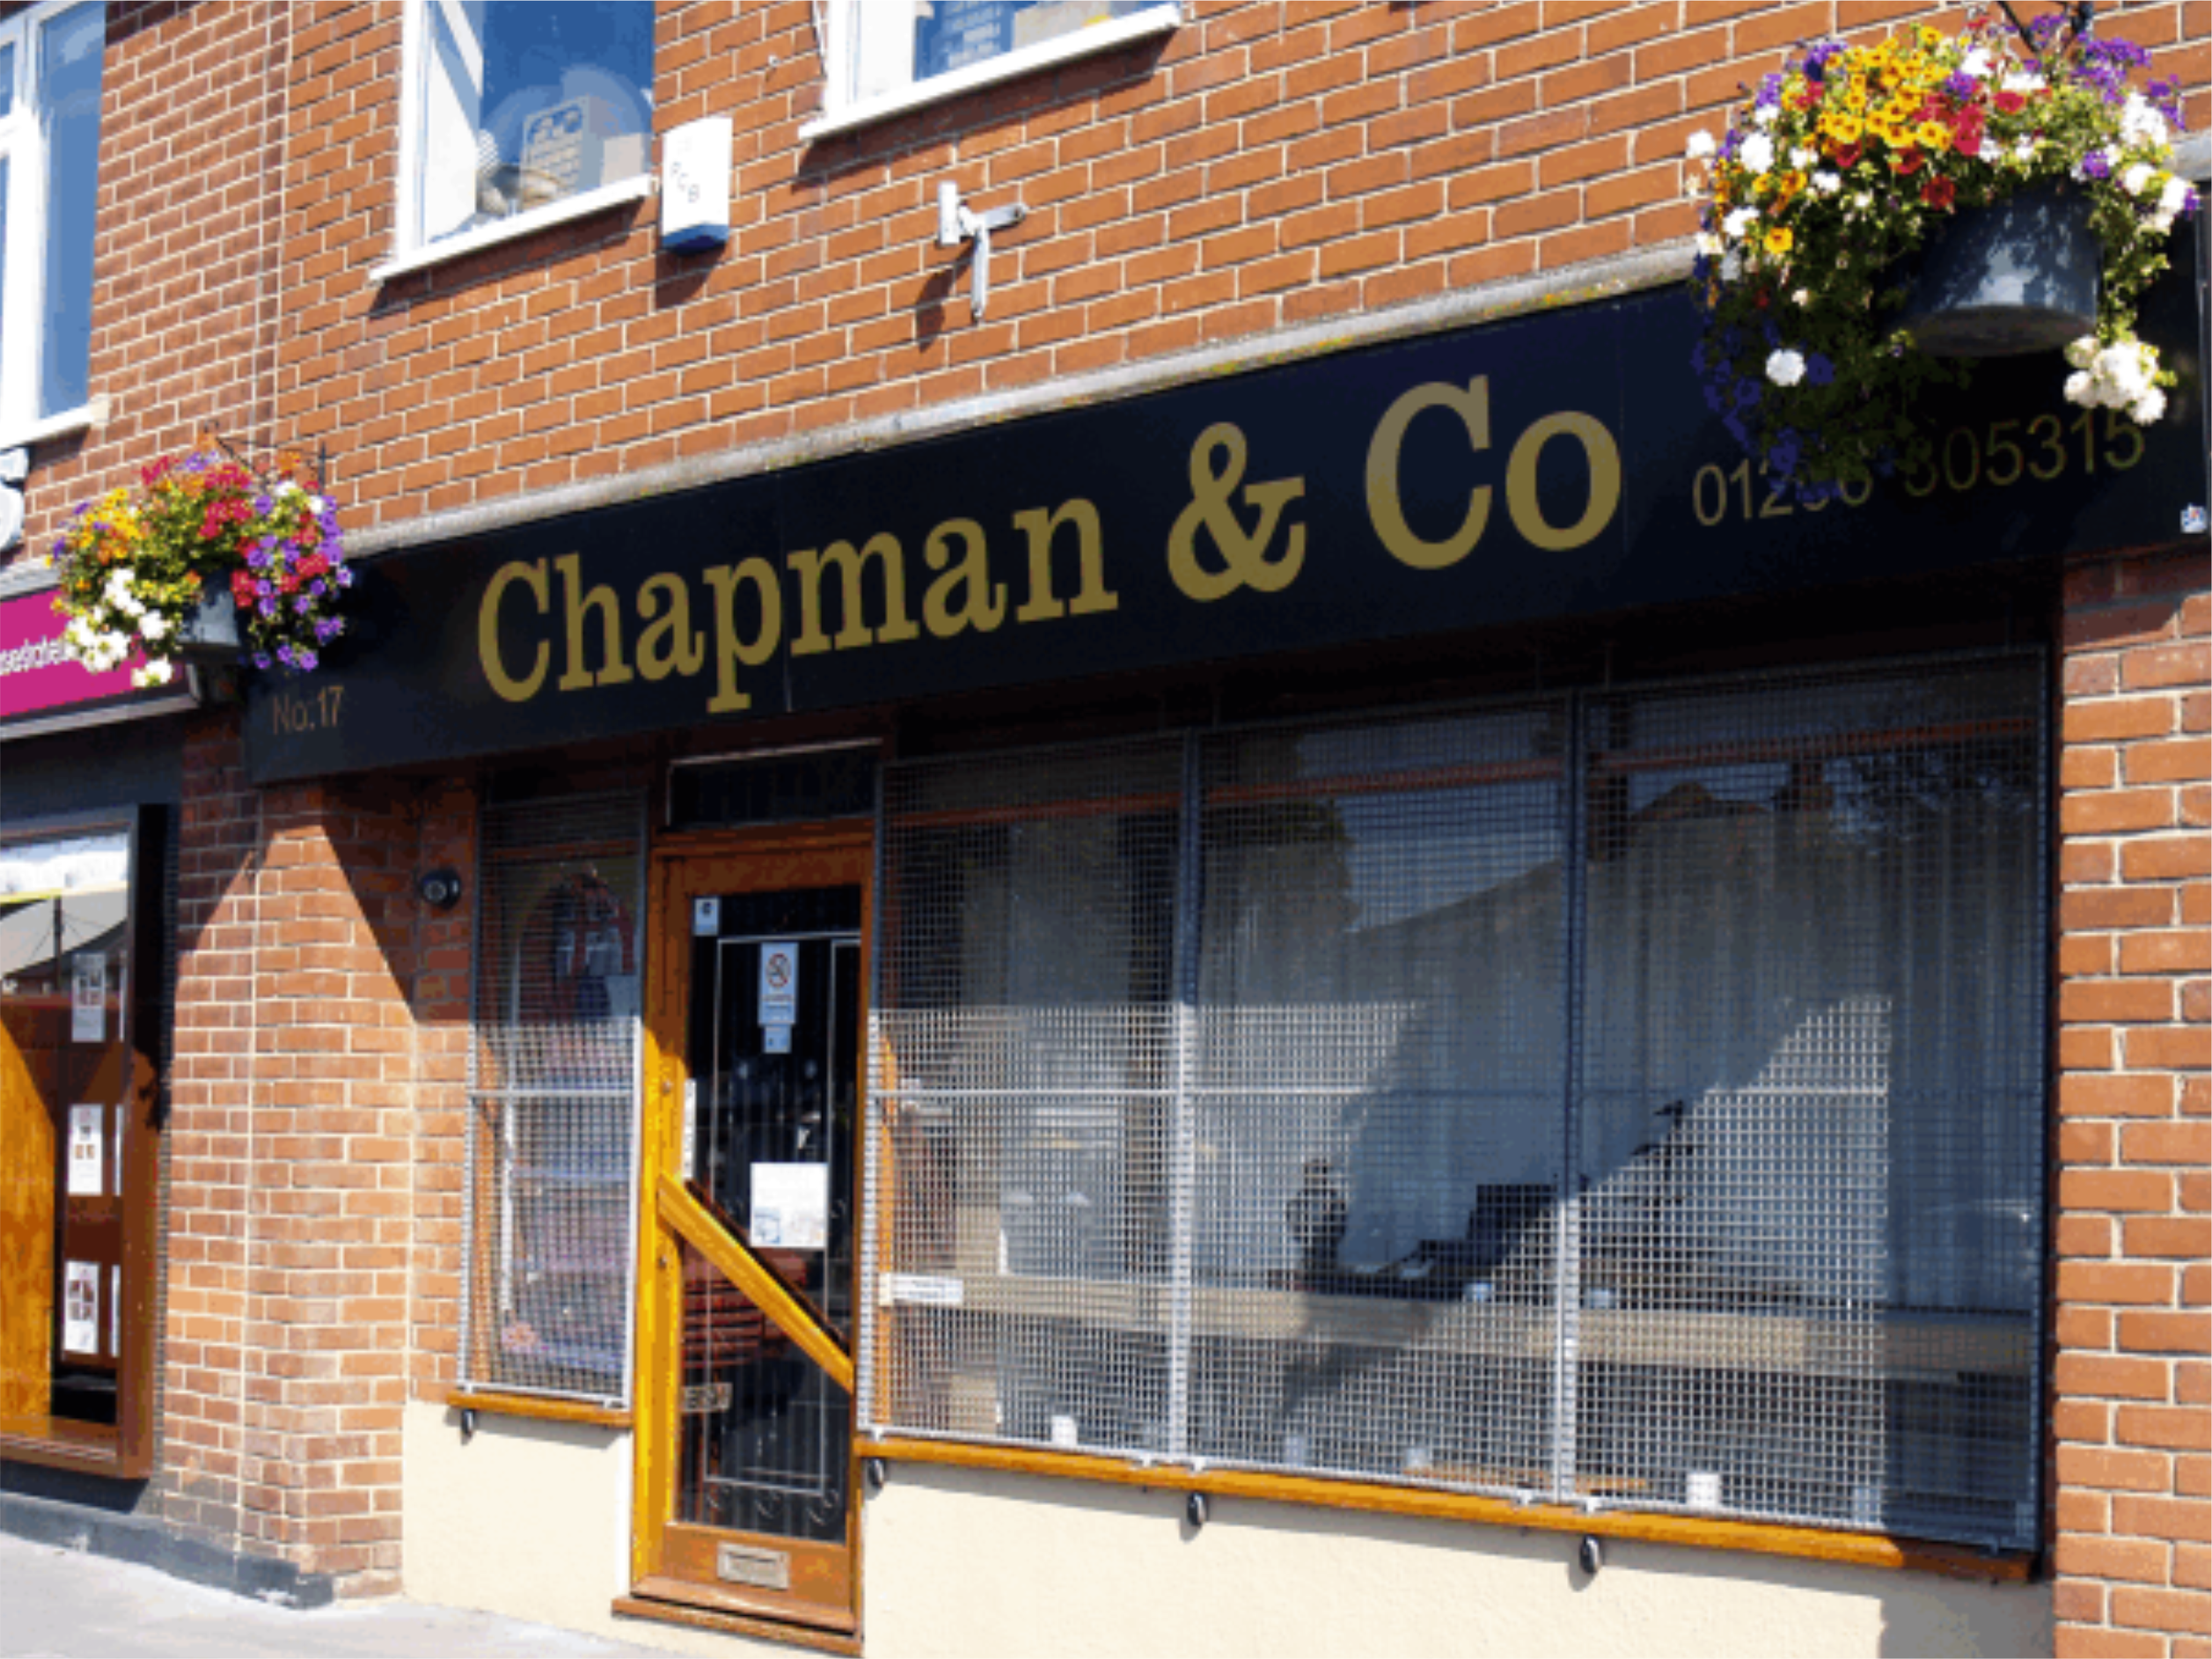 Chapmans Jewlers shop sign in Brightlingsea, Essex. Gold vinyl graphics were appleid to black aluminium composite sheets with folded returns. The sign was installed so that it covered the old storm damaged sign